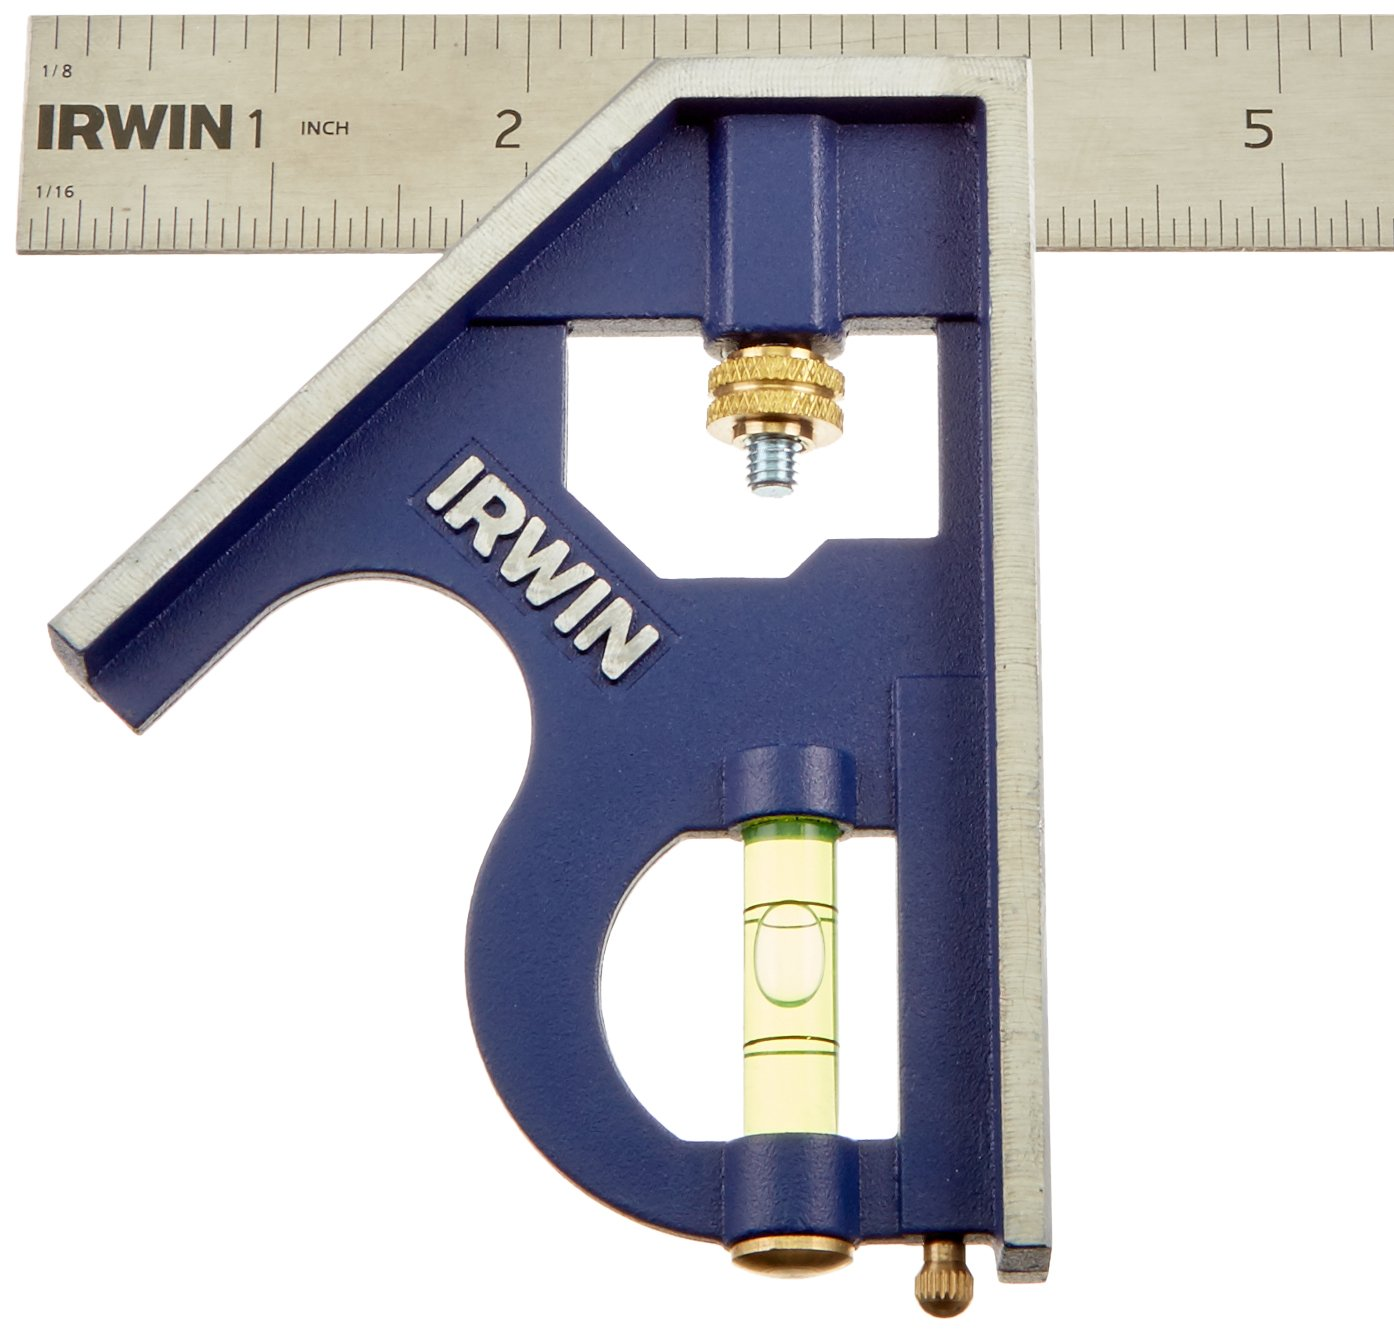 IRWIN Tools Combination Square, Metal-Body, 16-Inch (1794471) by Irwin Tools (Image #3)